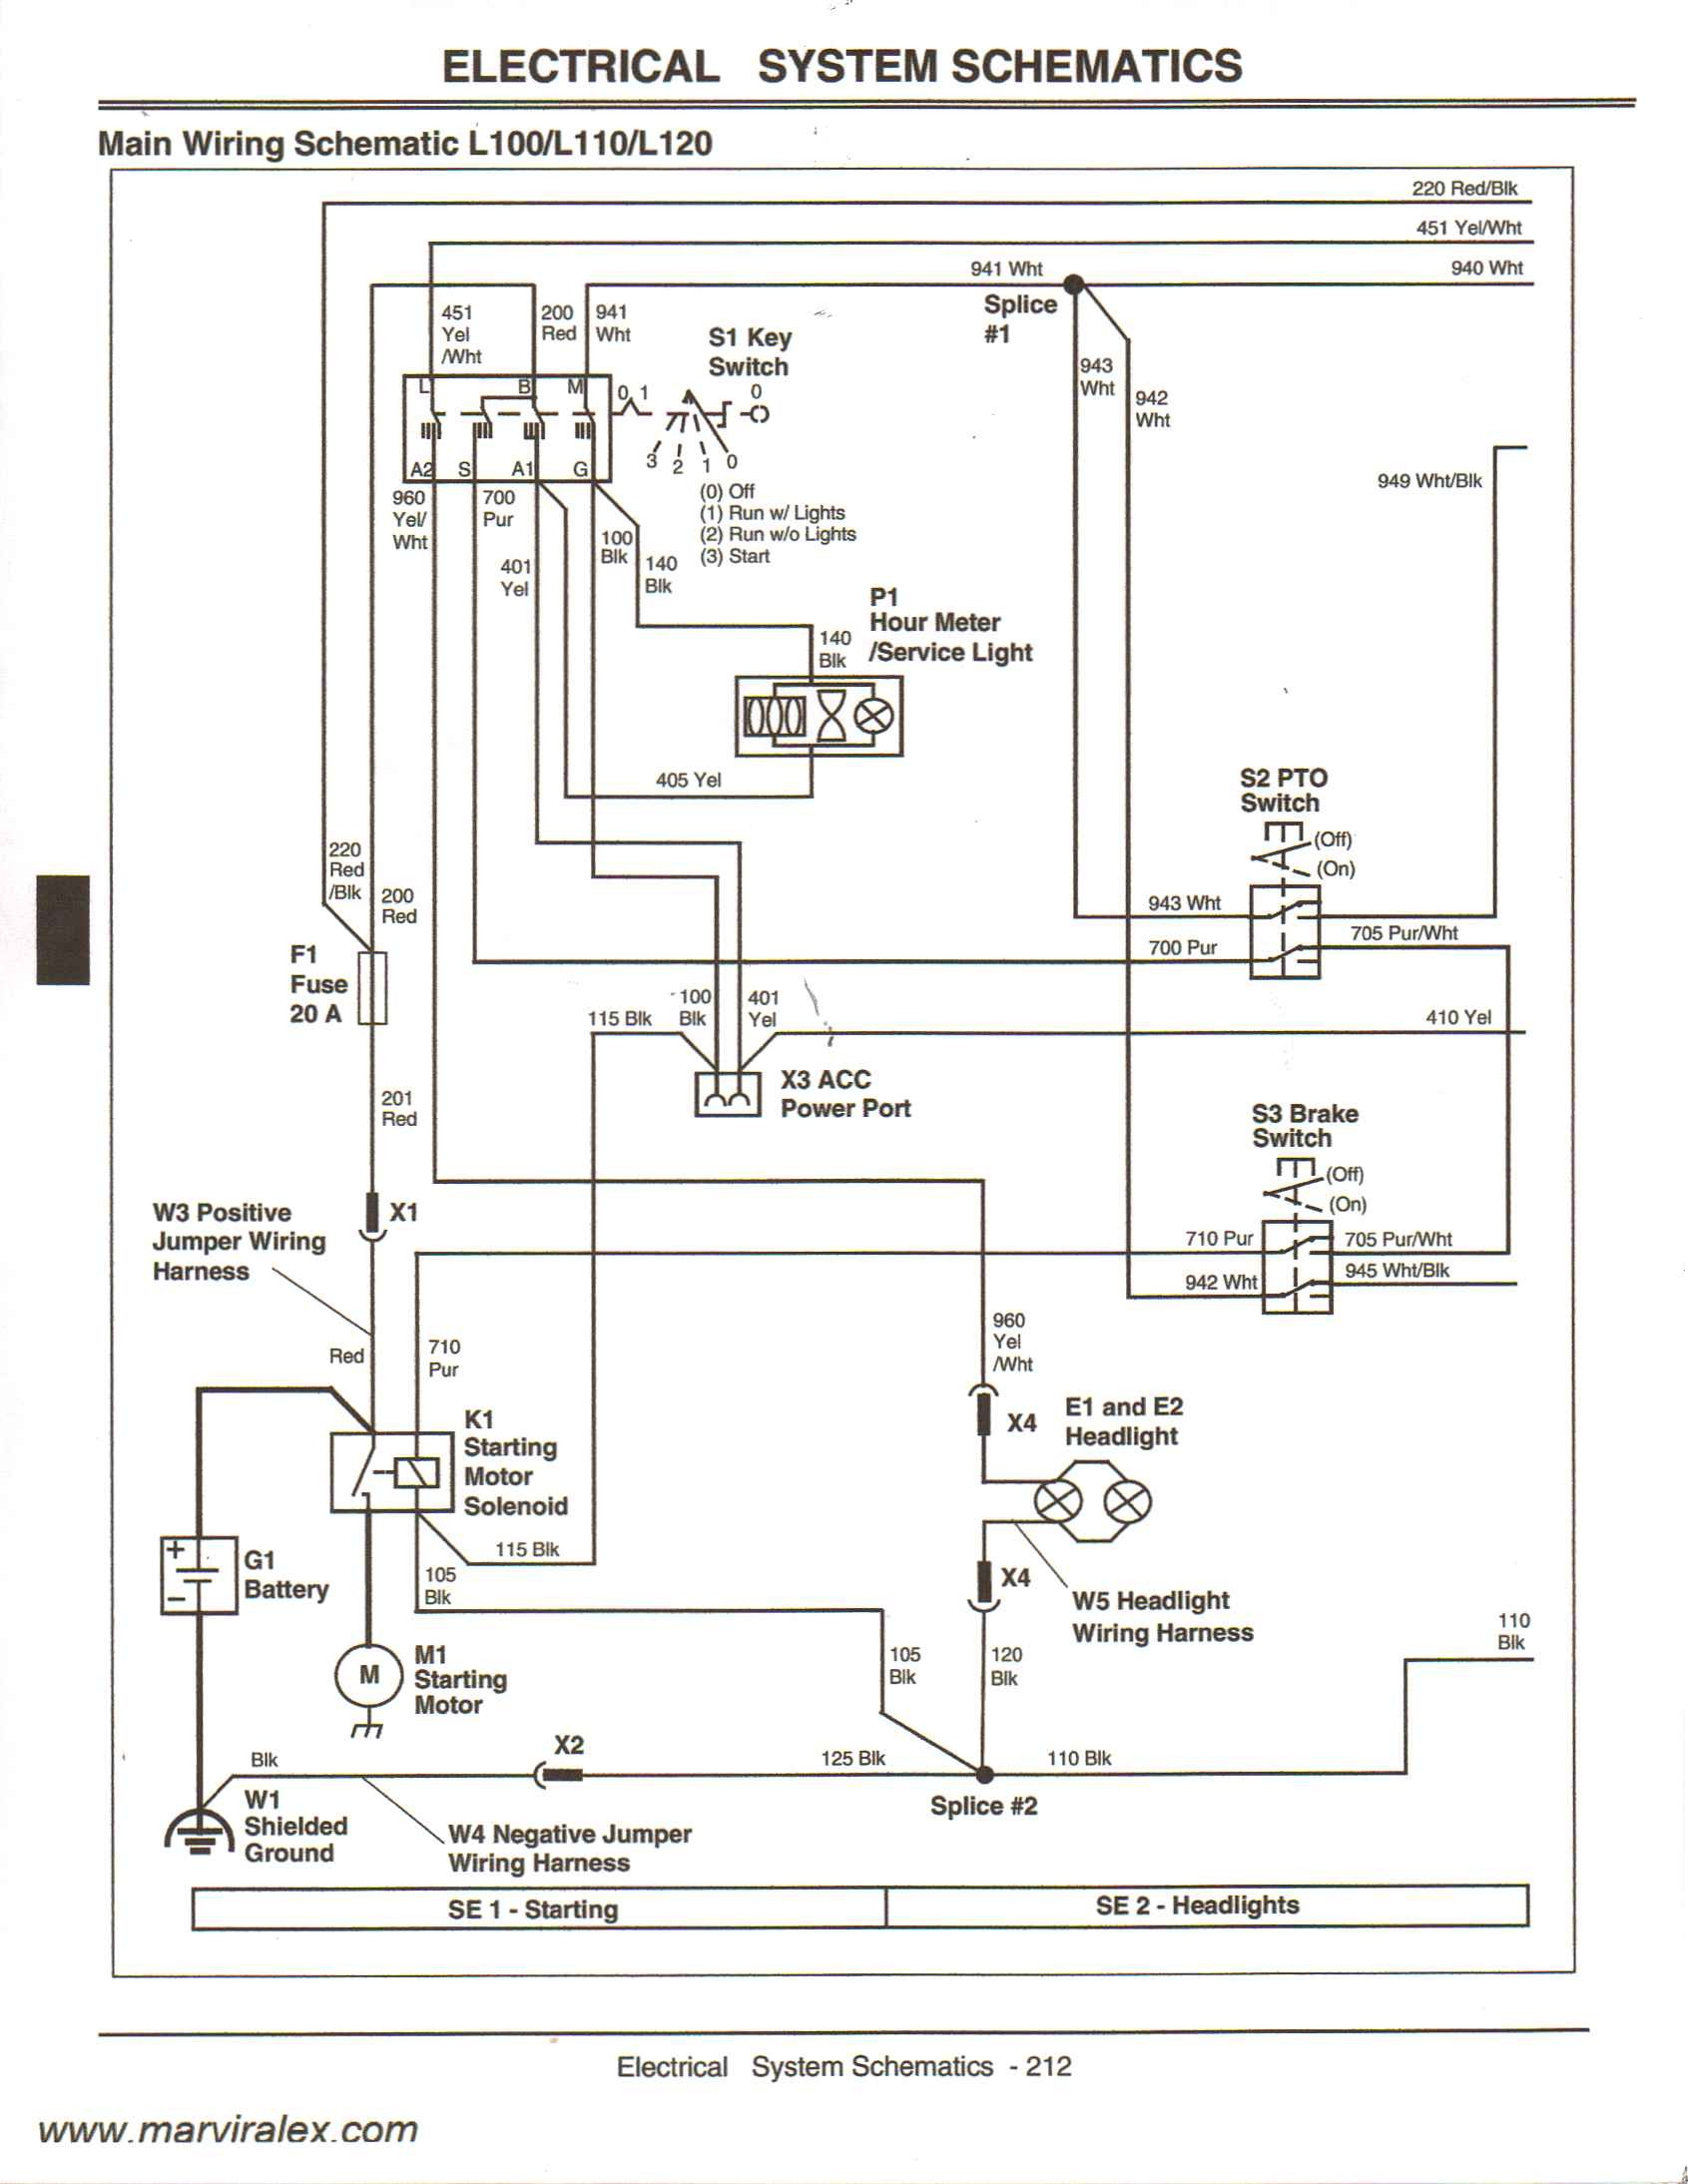 john deere cx gator wiring diagram the uptodate wiring diagram rh nk nnwqks cleas de John Deere Gator Electrical Schematic John Deere Gator 6X4 Wiring-Diagram